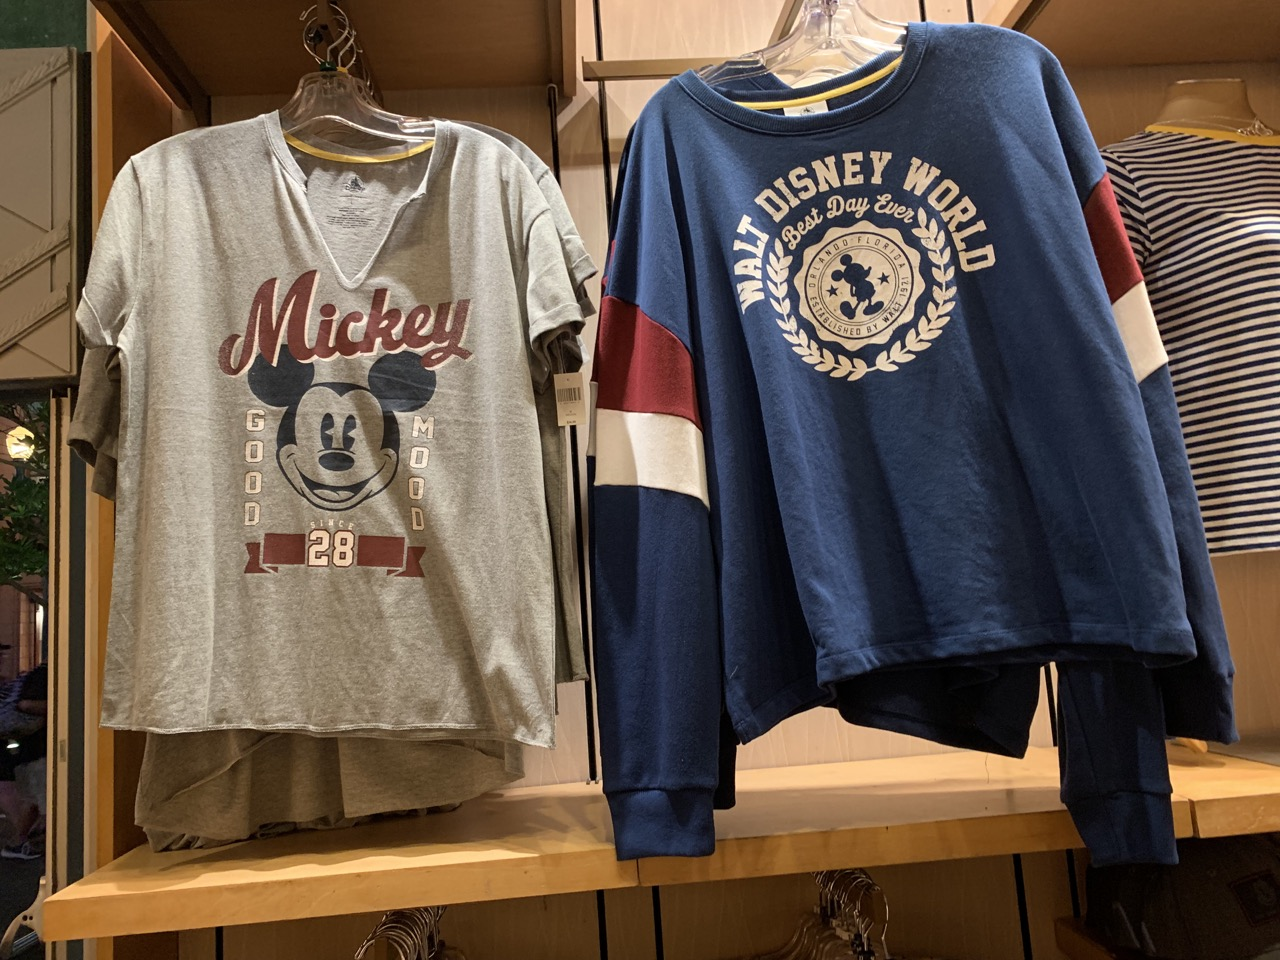 disney world trip report early summer 2019 day two merchandise 12.jpeg